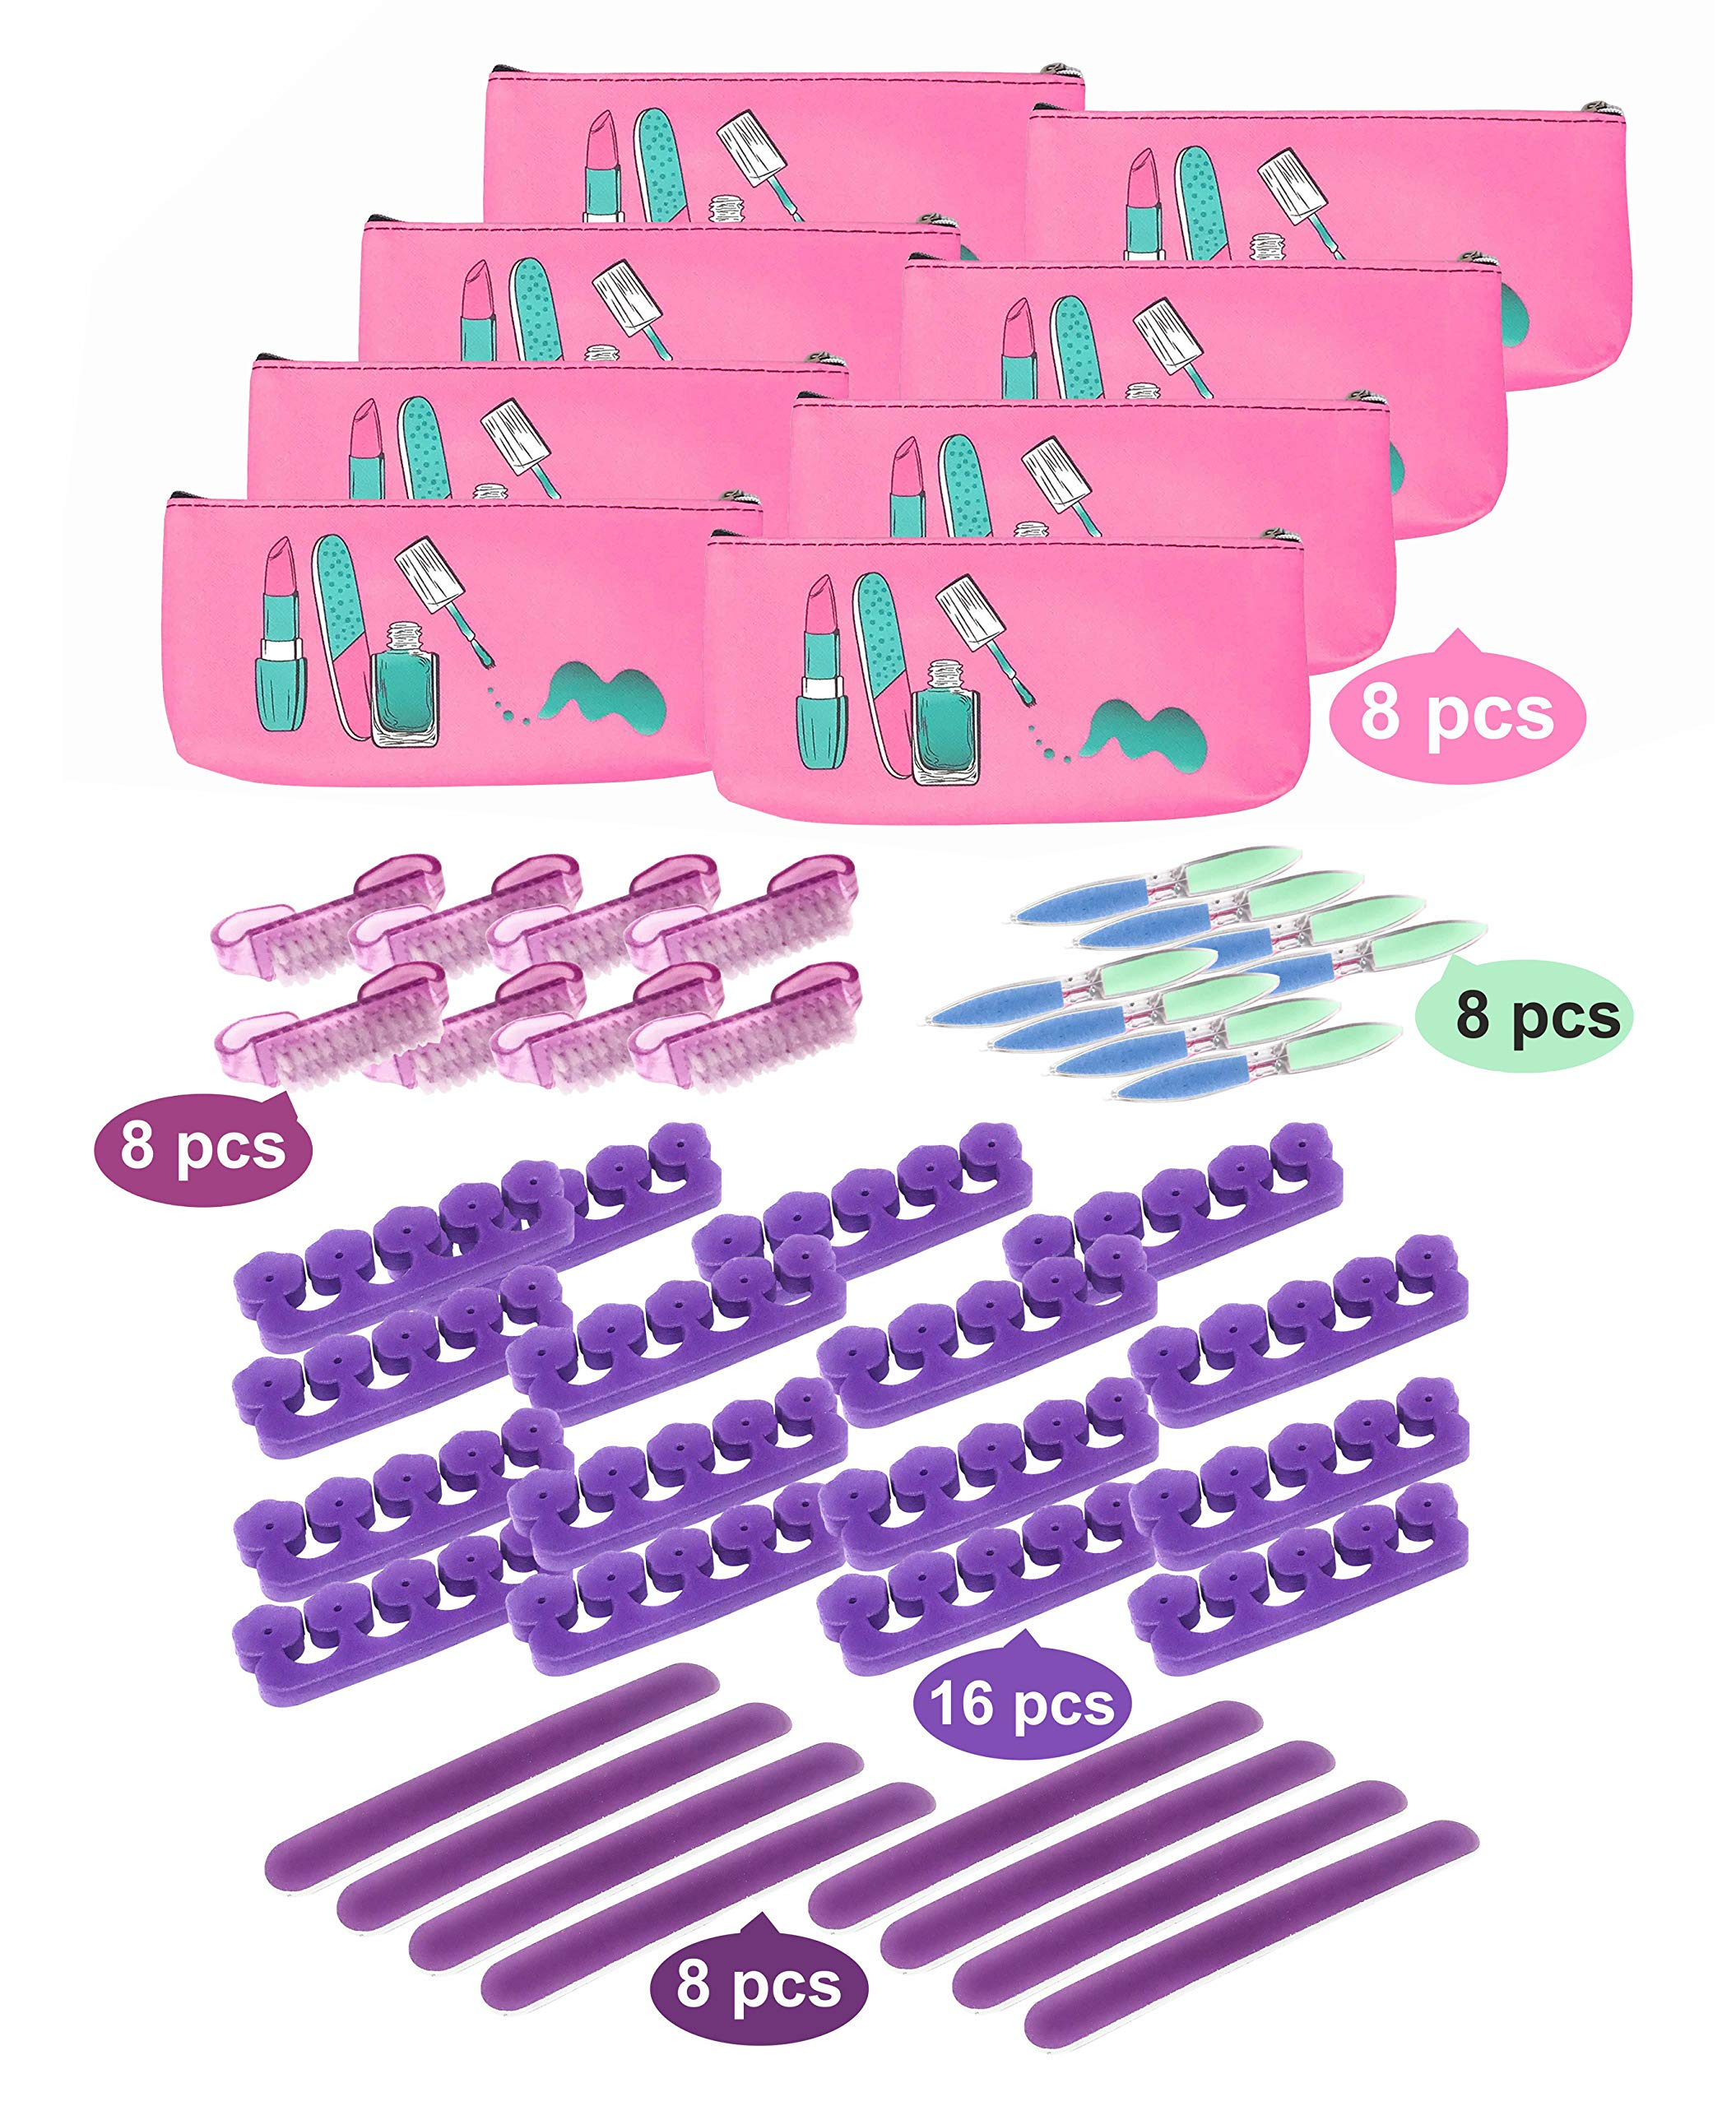 Spa Party Favors 48 Piece Set for Girls mani and pedi (8 Mini Emery Boards, 16 Toe Separators, 8 Brushes, and 8 6-way Nail Buffer) by MtnGift